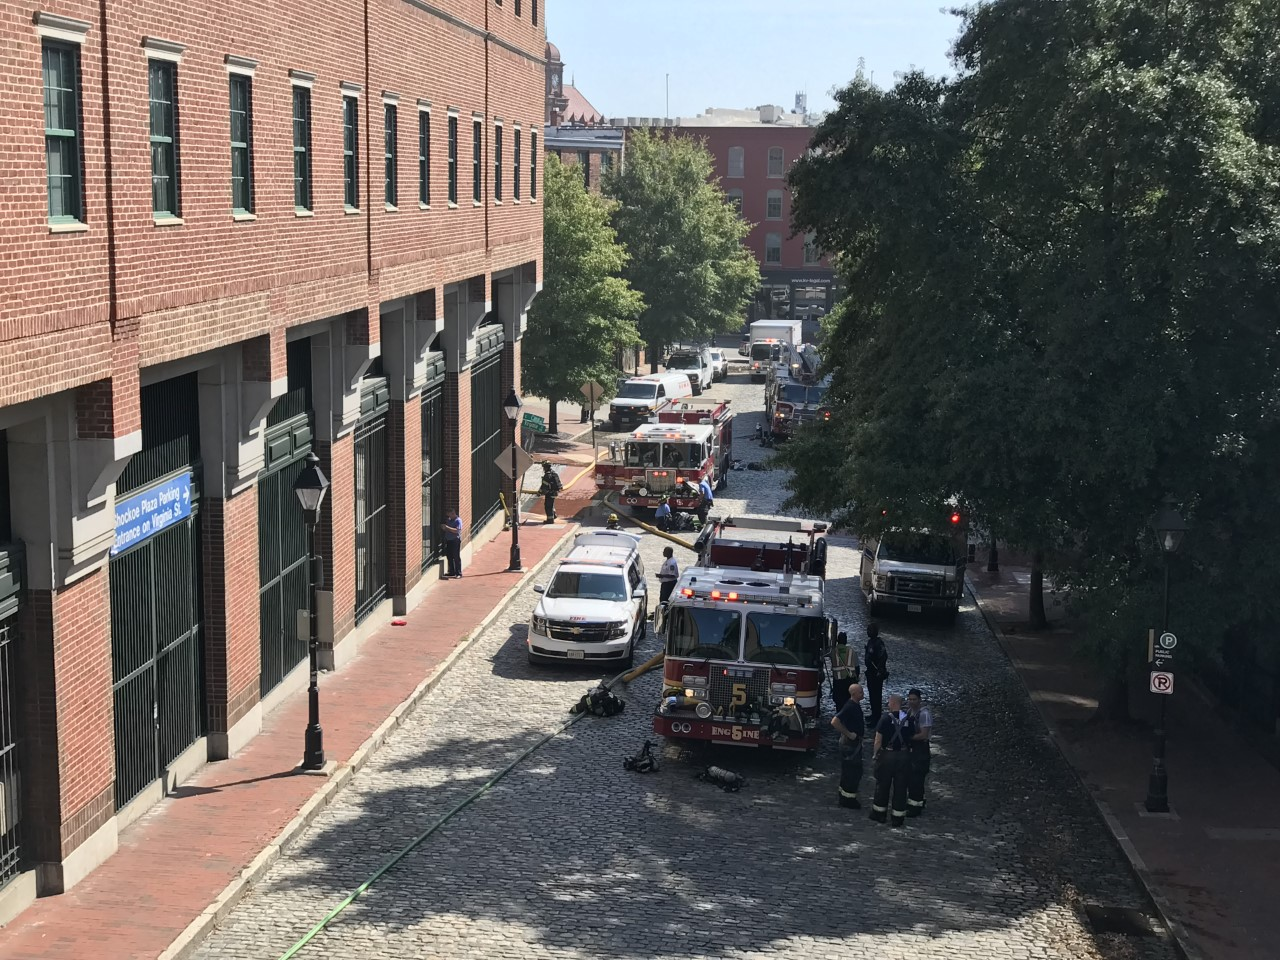 The Martin Agency evacuated after fire in parking garage